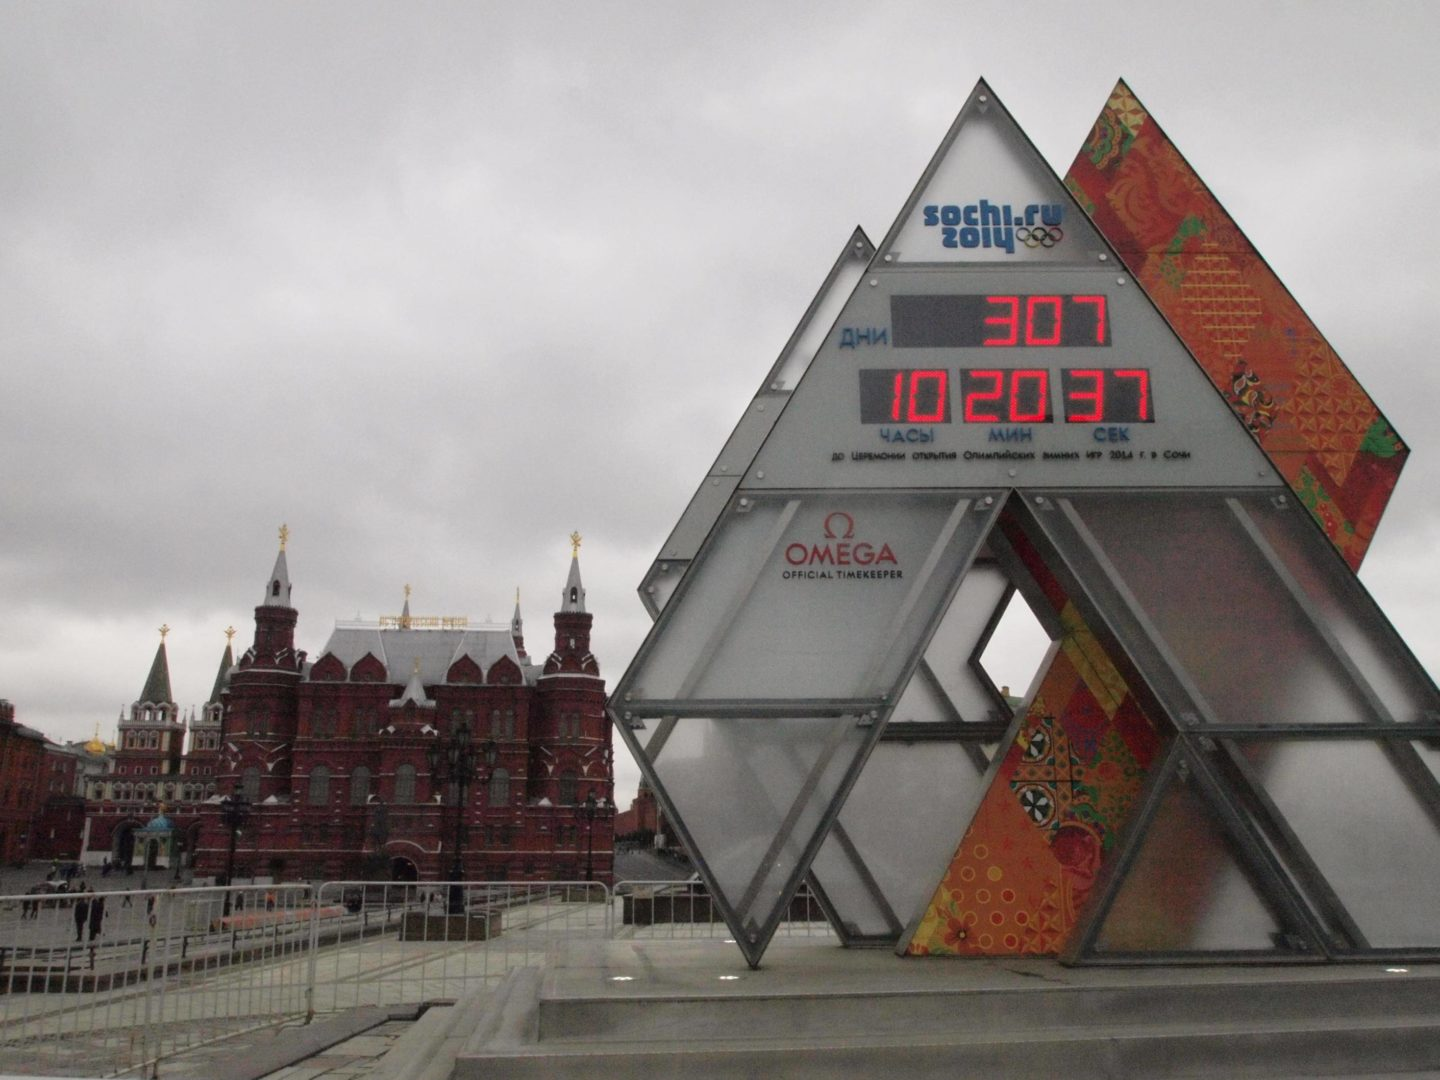 RUS-Moscow City Red Square 20130406 Close To Red Square prepare for 2014 Olympics Sochi